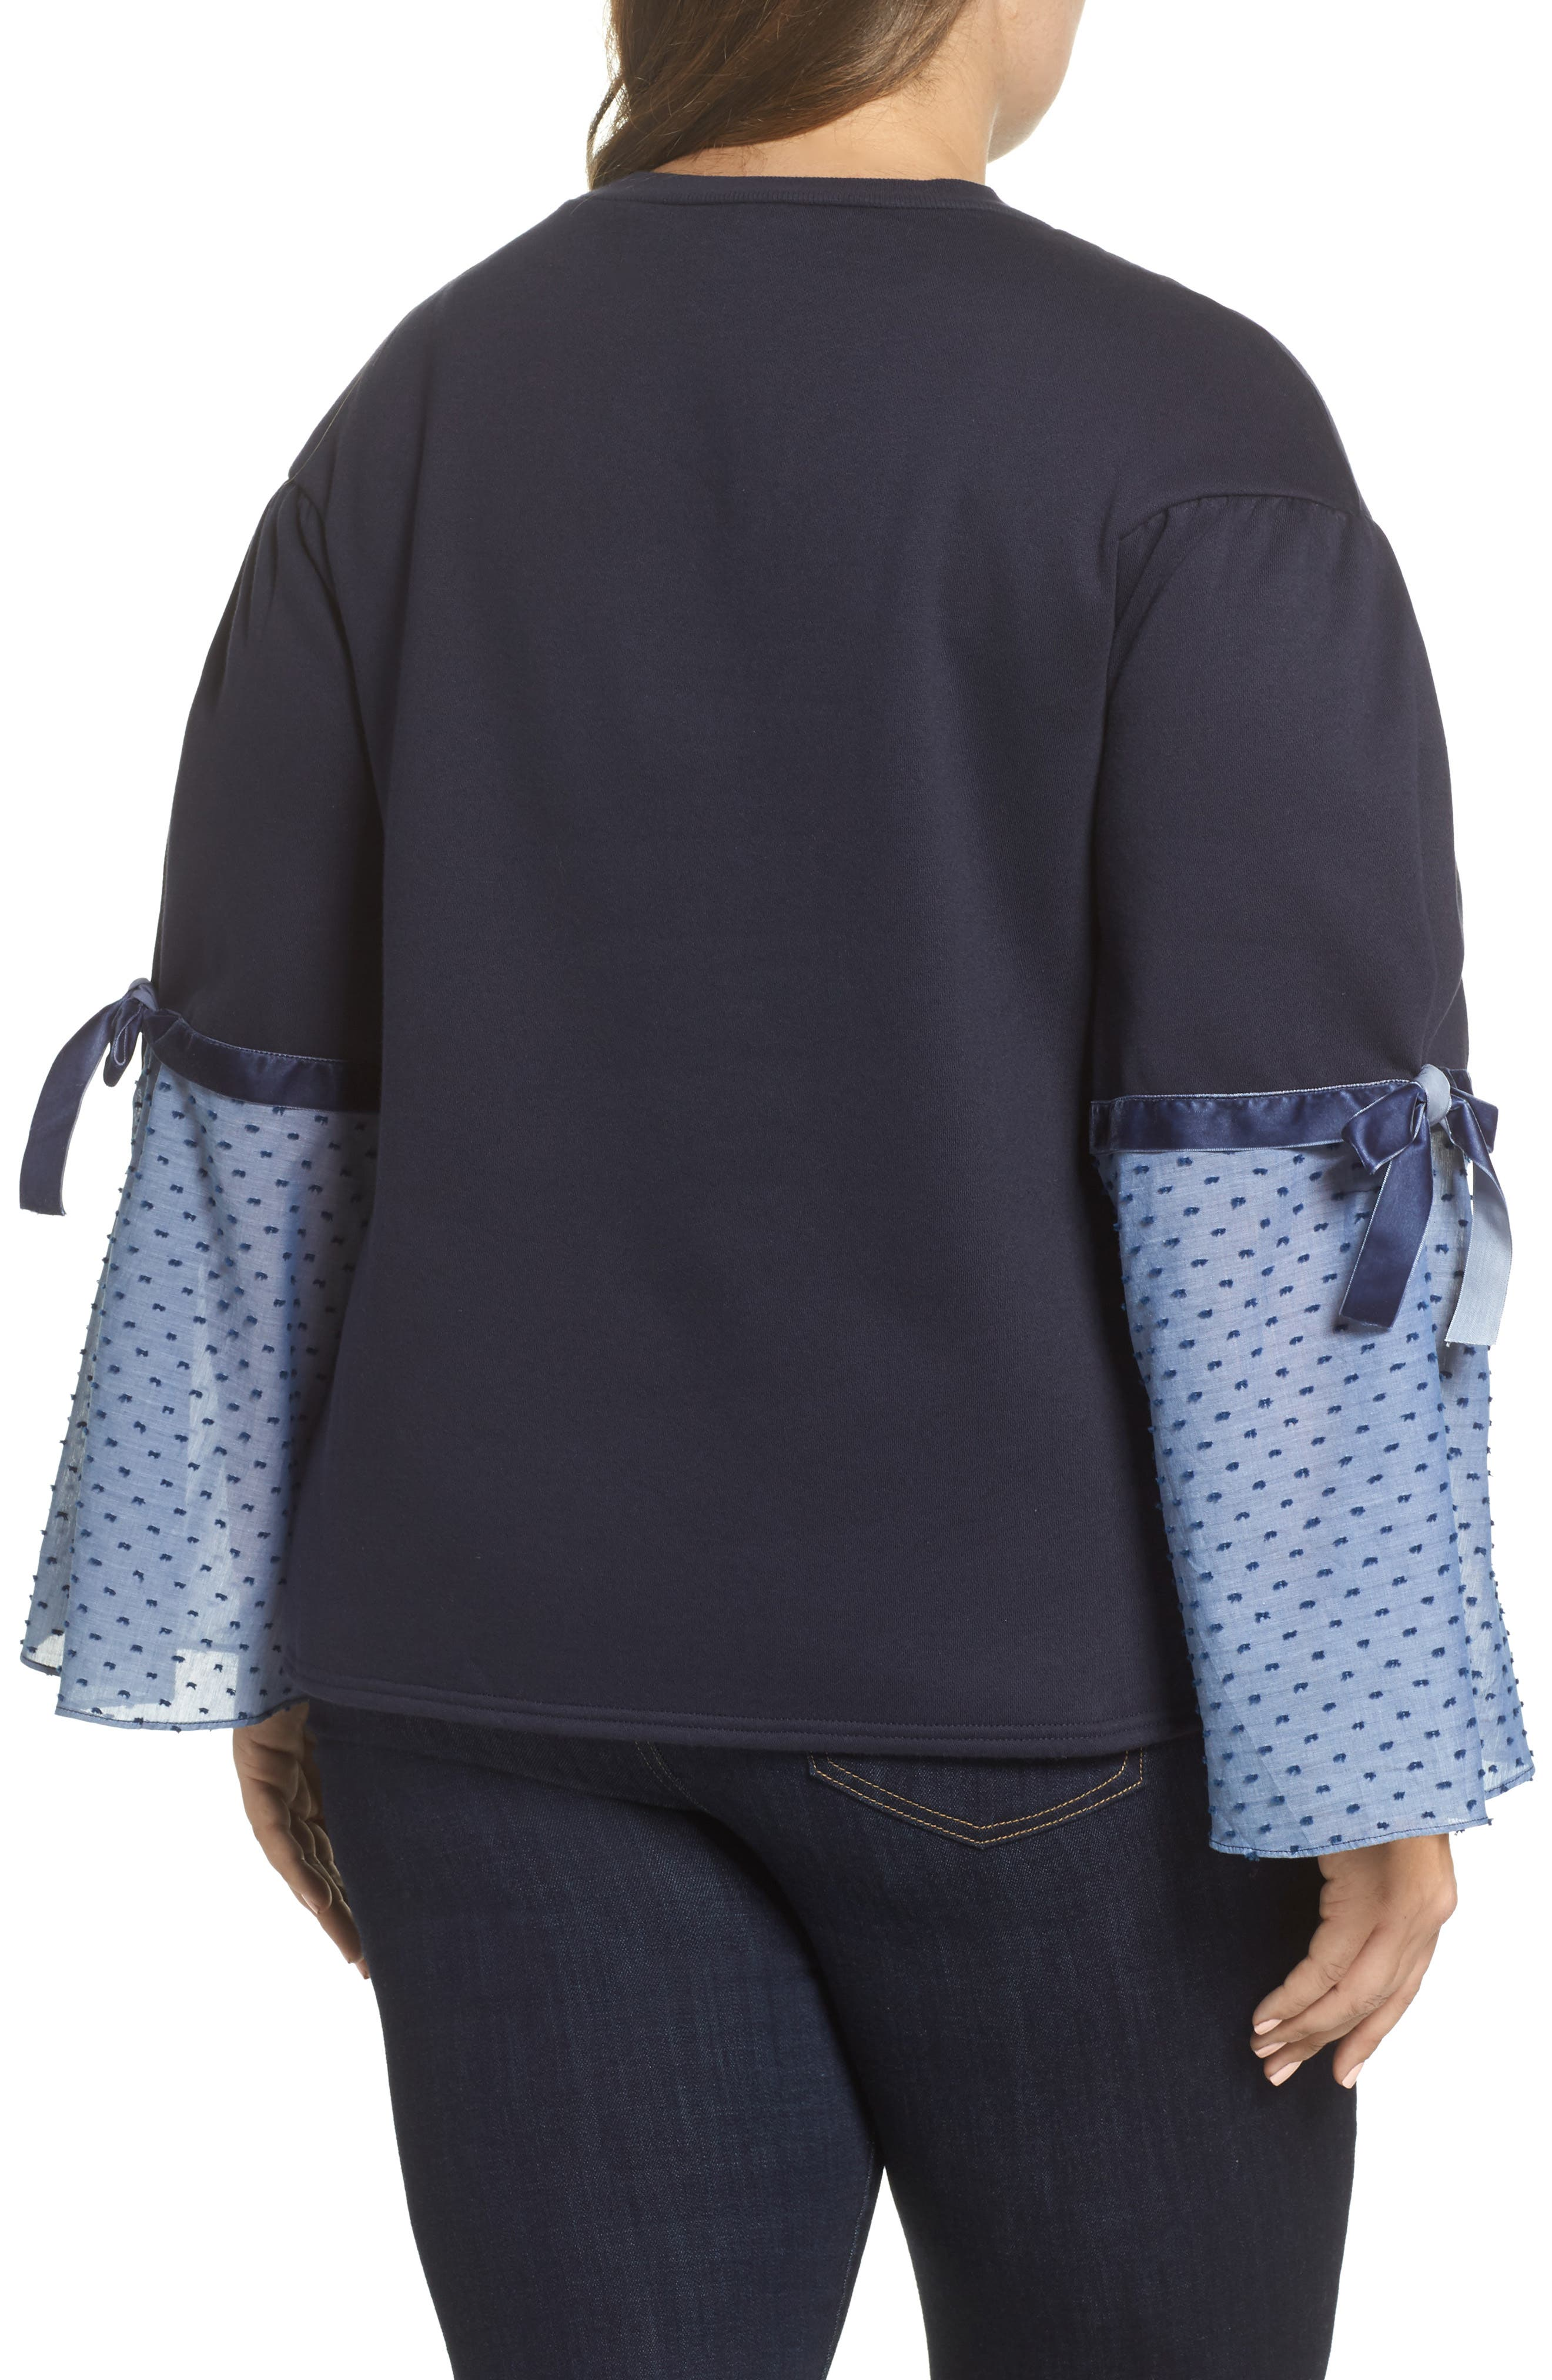 Sweatshirt with Woven Tie Sleeves,                             Alternate thumbnail 2, color,                             410